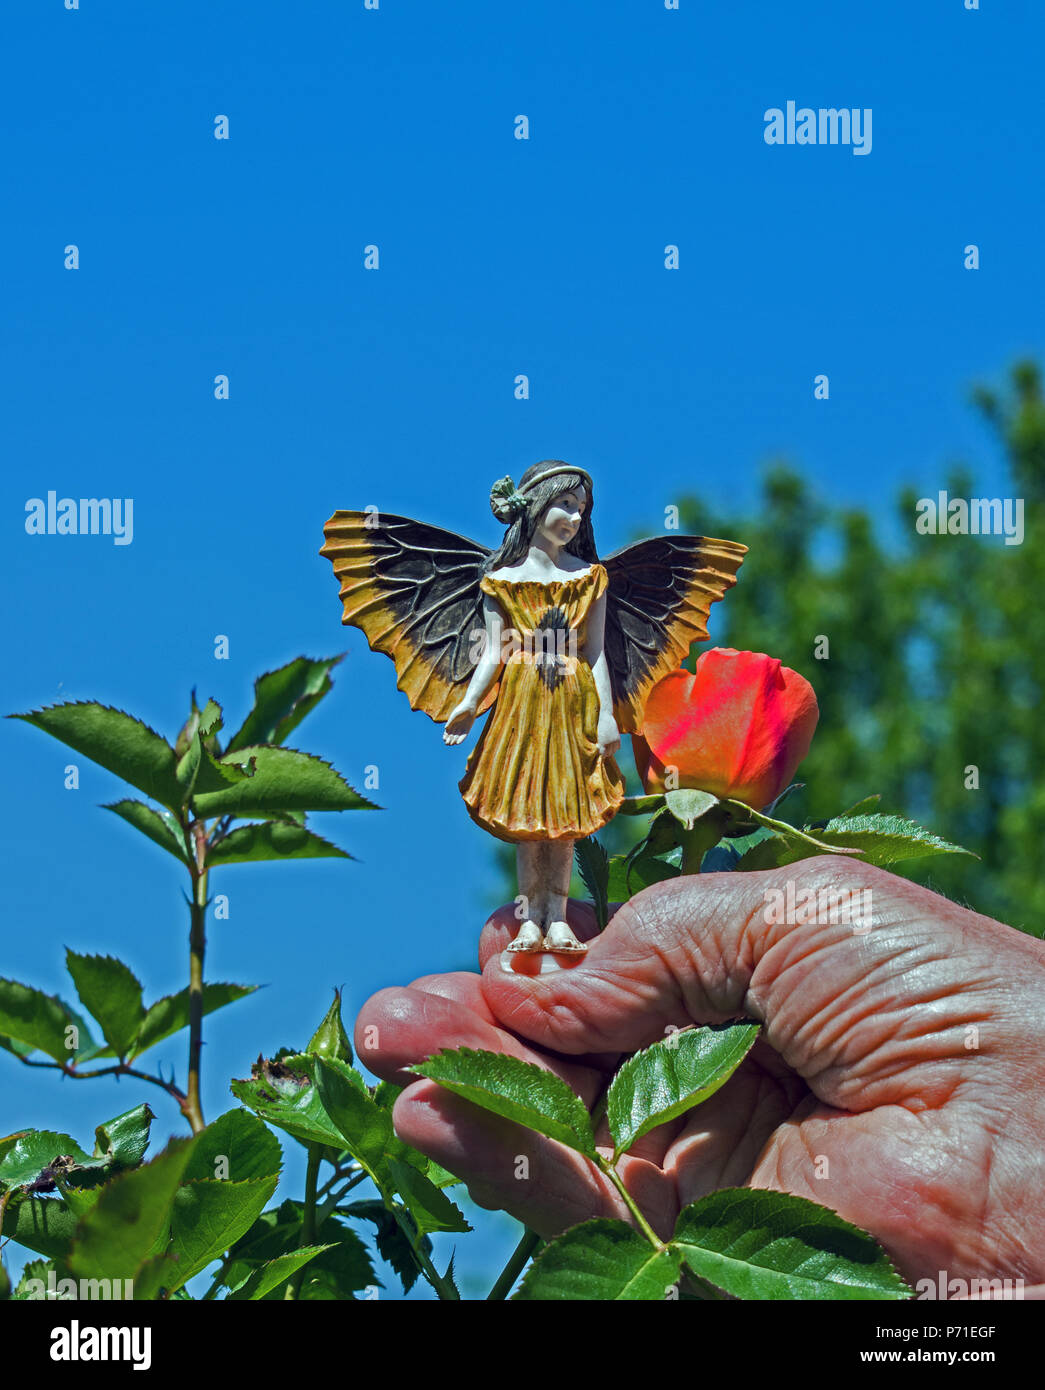 Model Fairy on a human hand - Stock Image